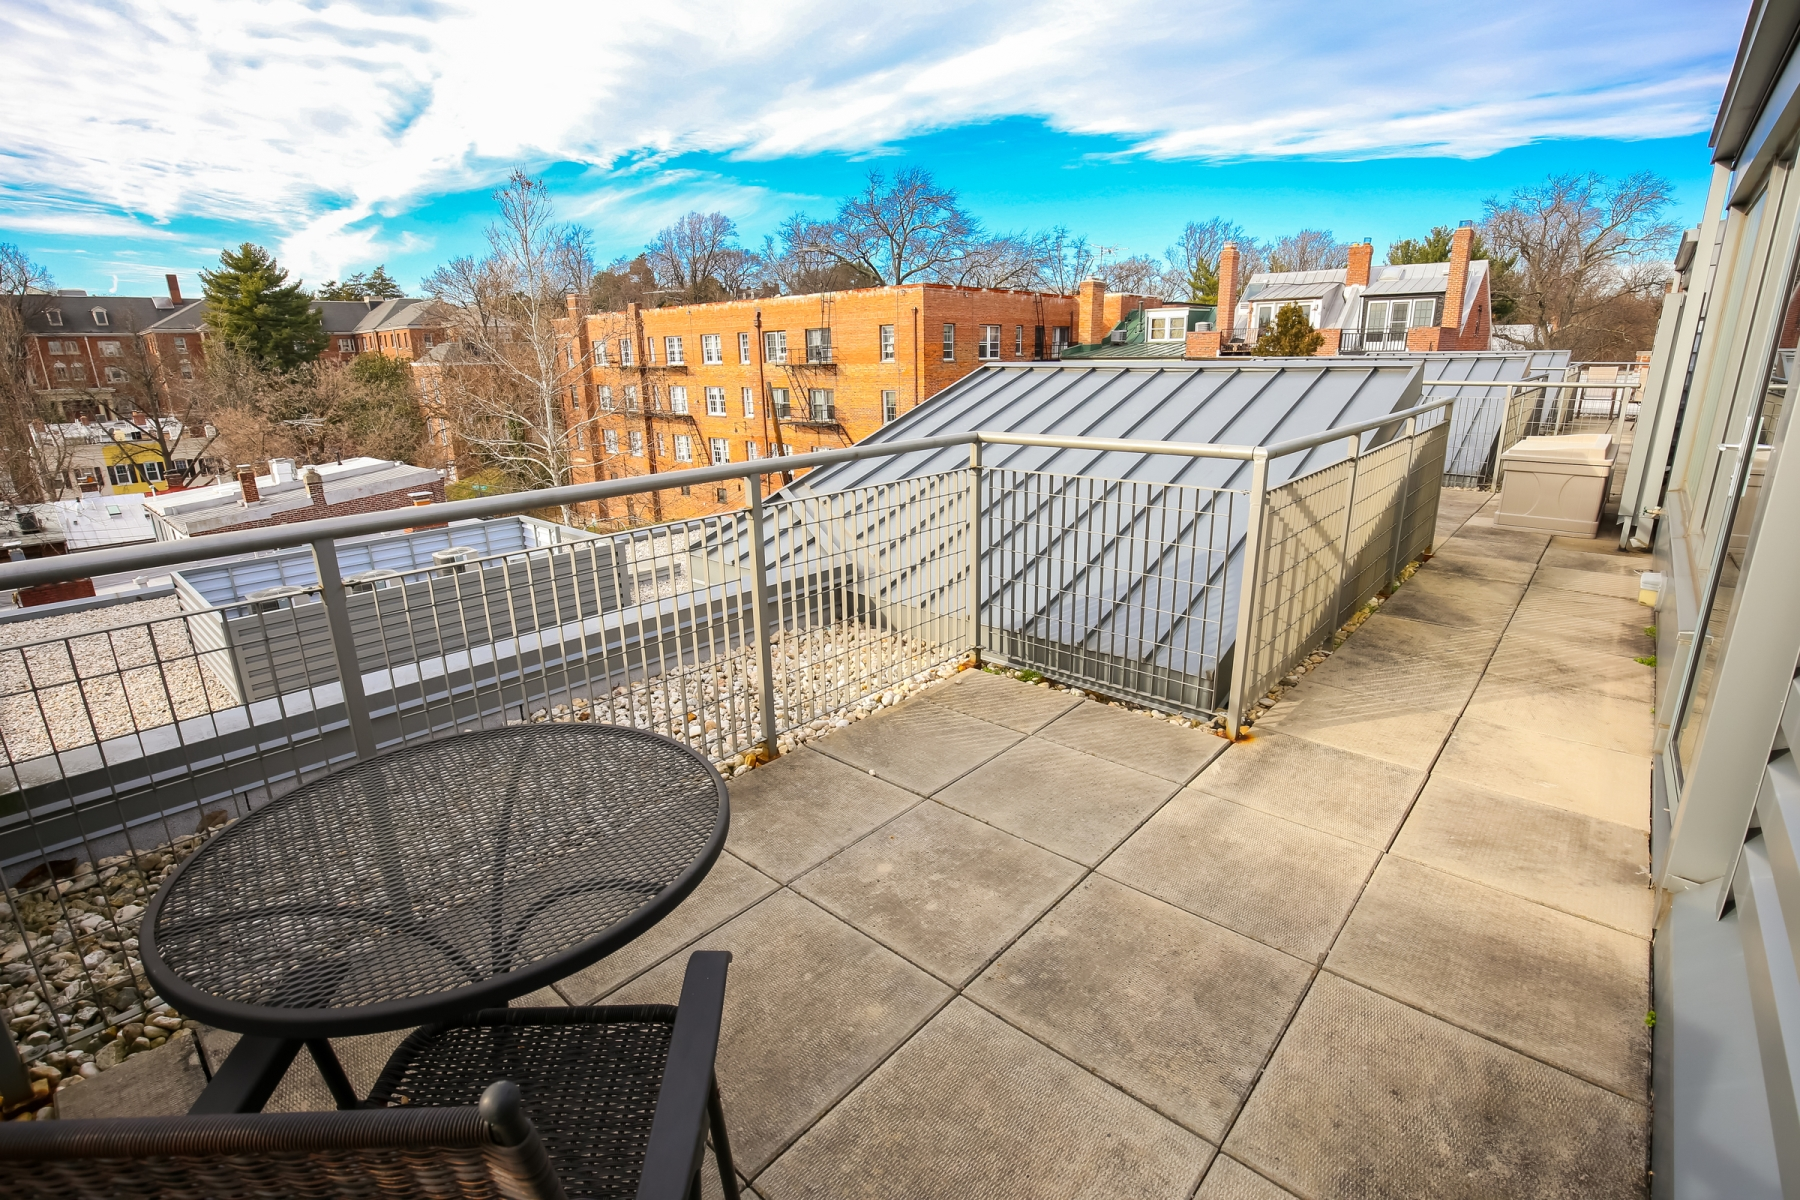 Additional photo for property listing at 2516 Q Street Nw Q302, Washington  Washington, District Of Columbia 20007 United States